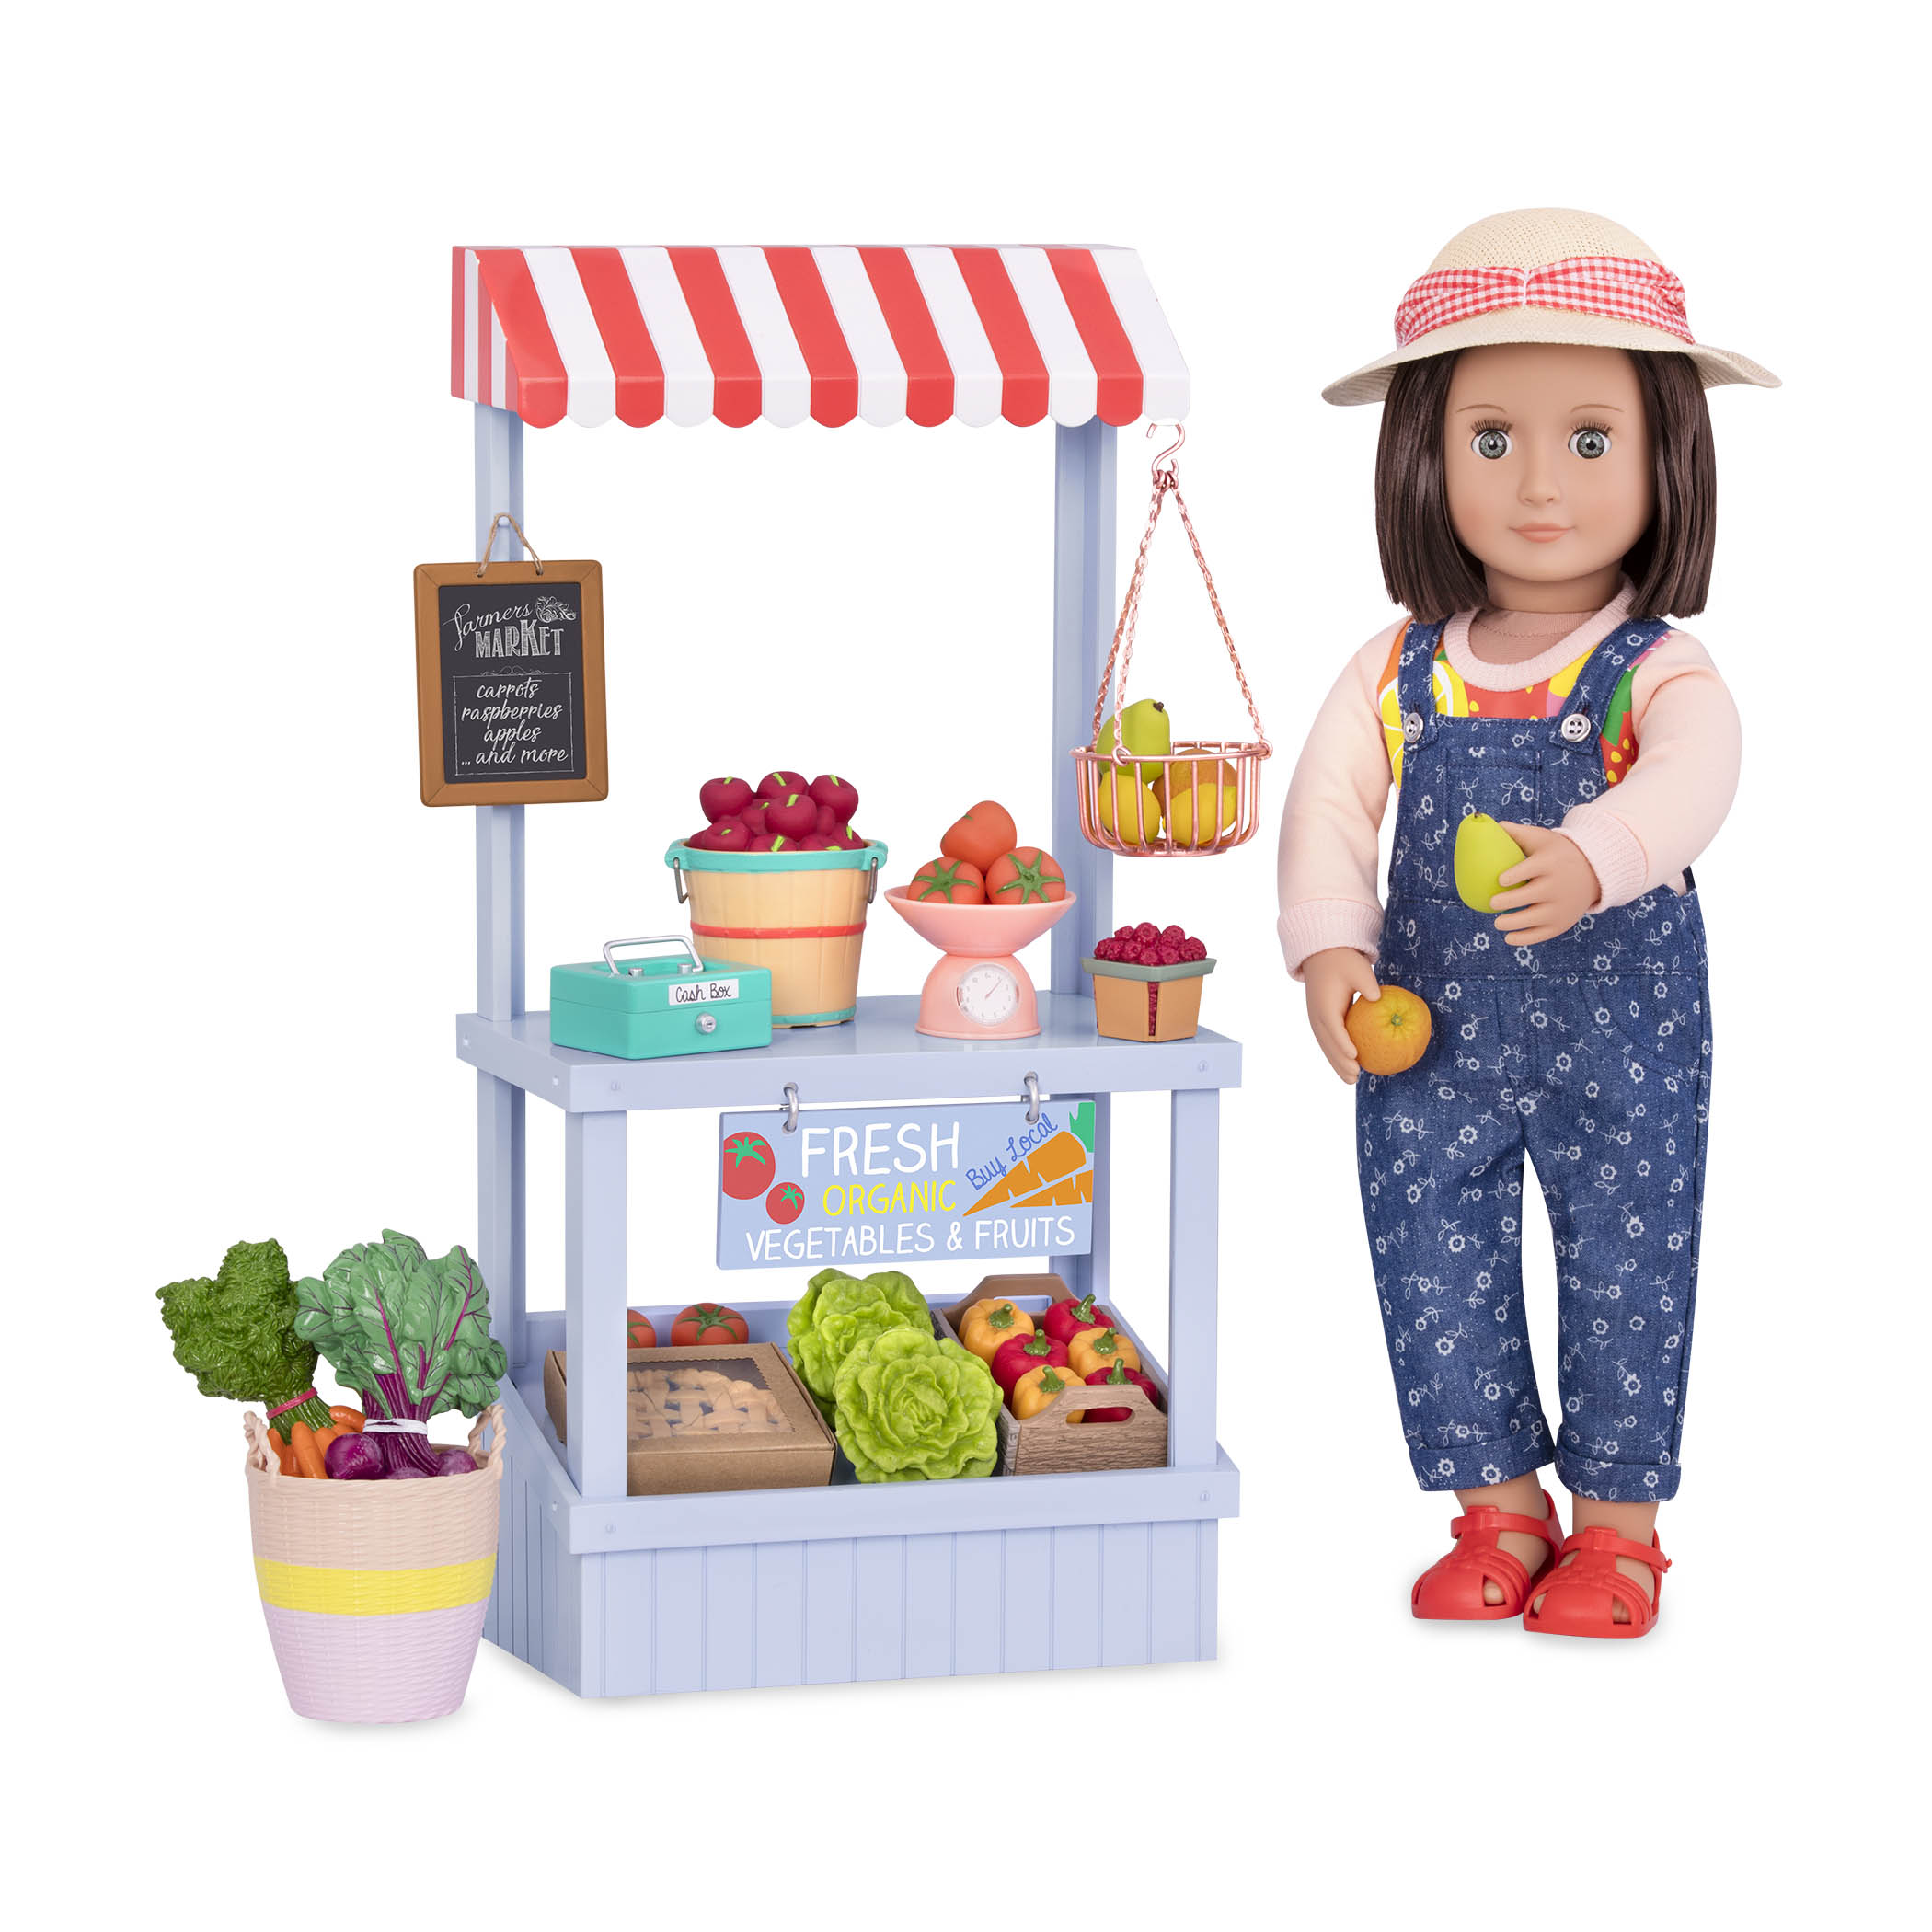 Farmers Market Set with Everly holding fruit